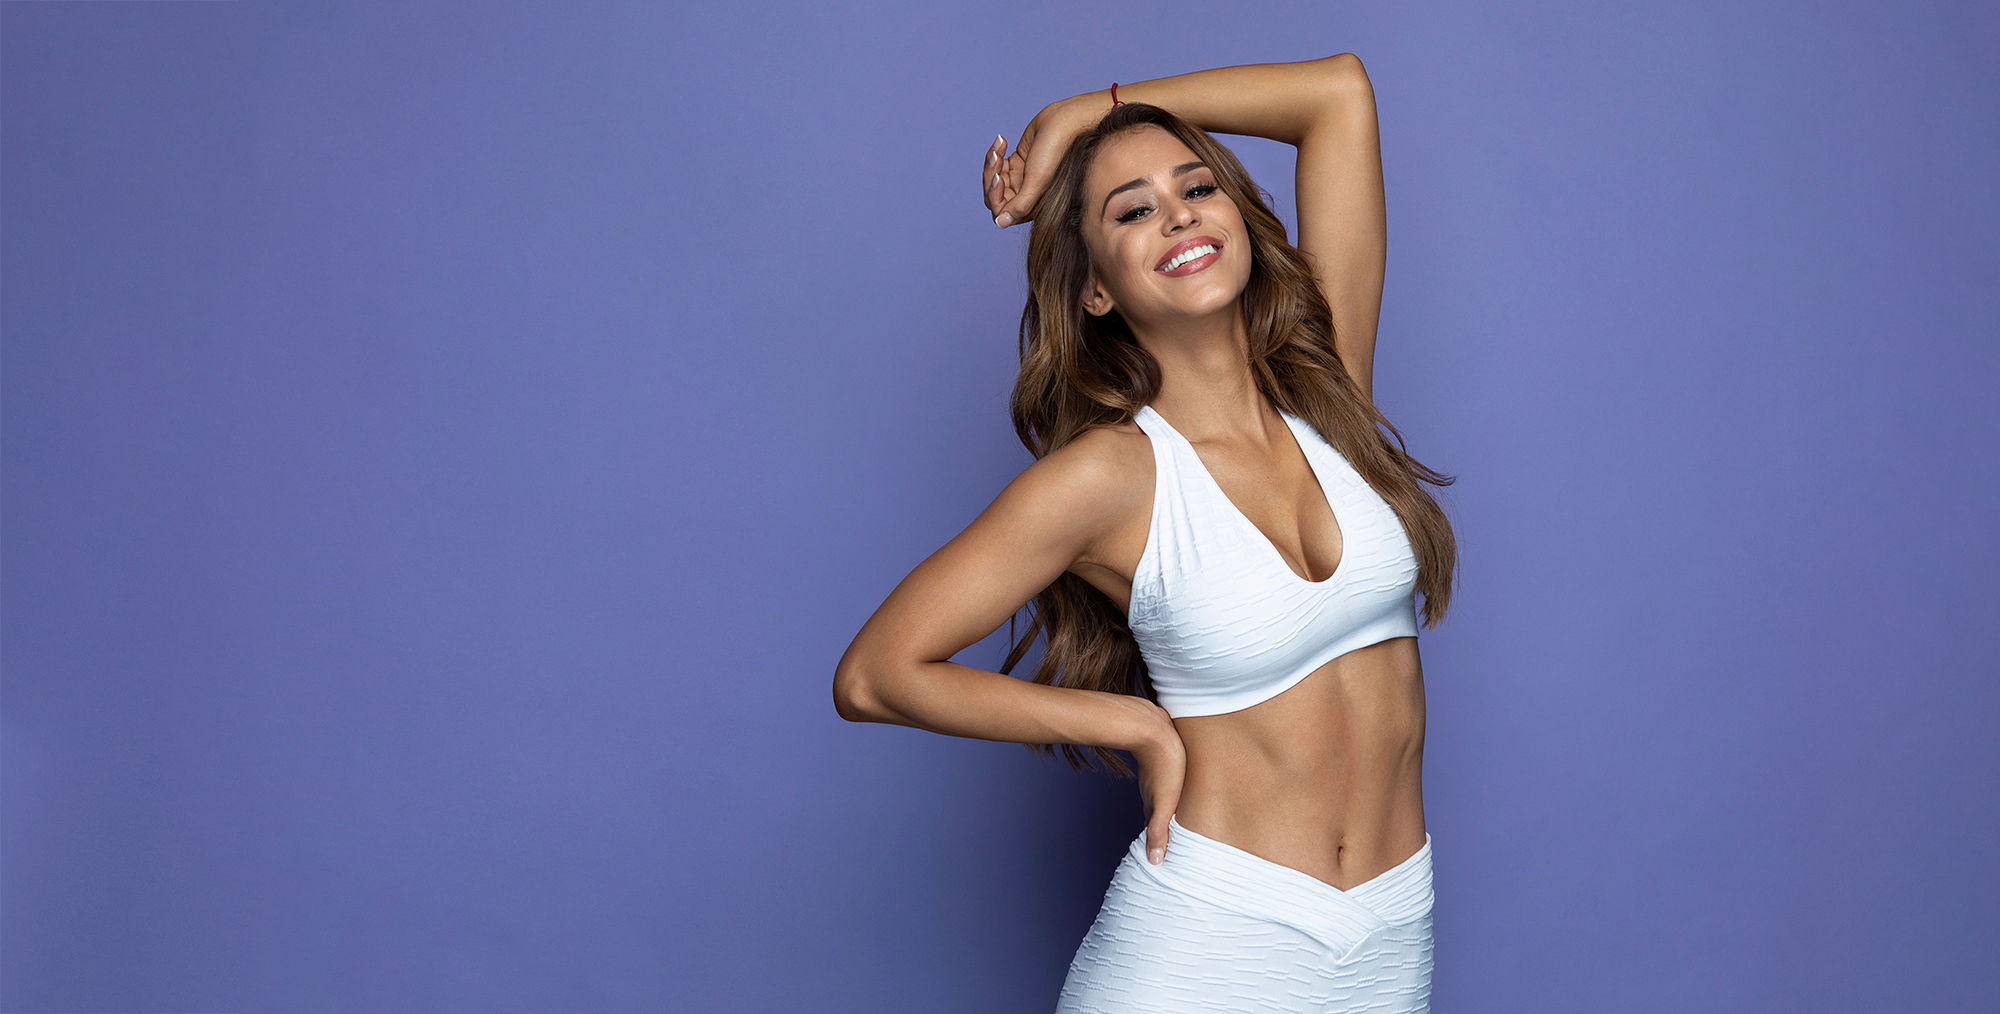 Yanet Garcia Hottest News Anchors in the World